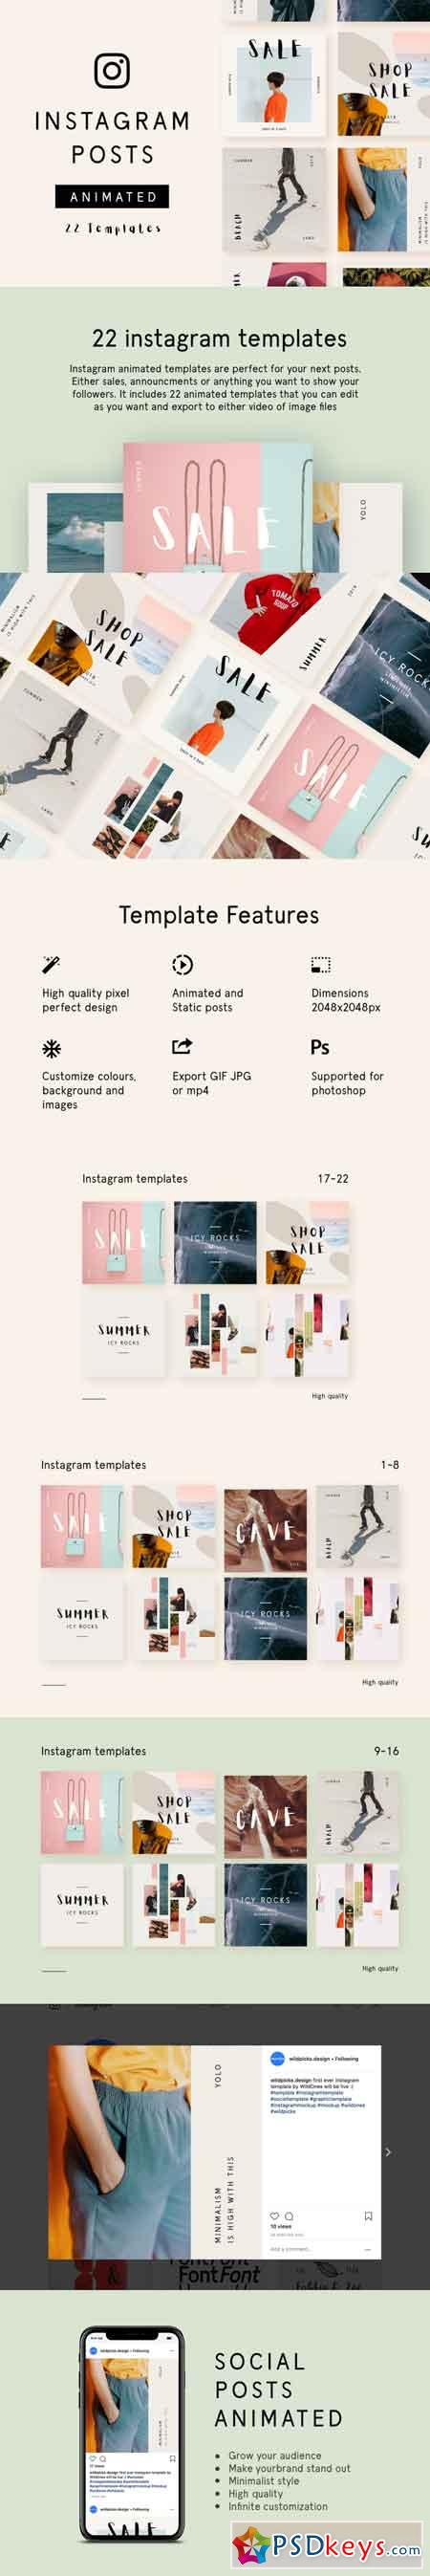 Animated Instagram Post Templates - Minimalist 3467827